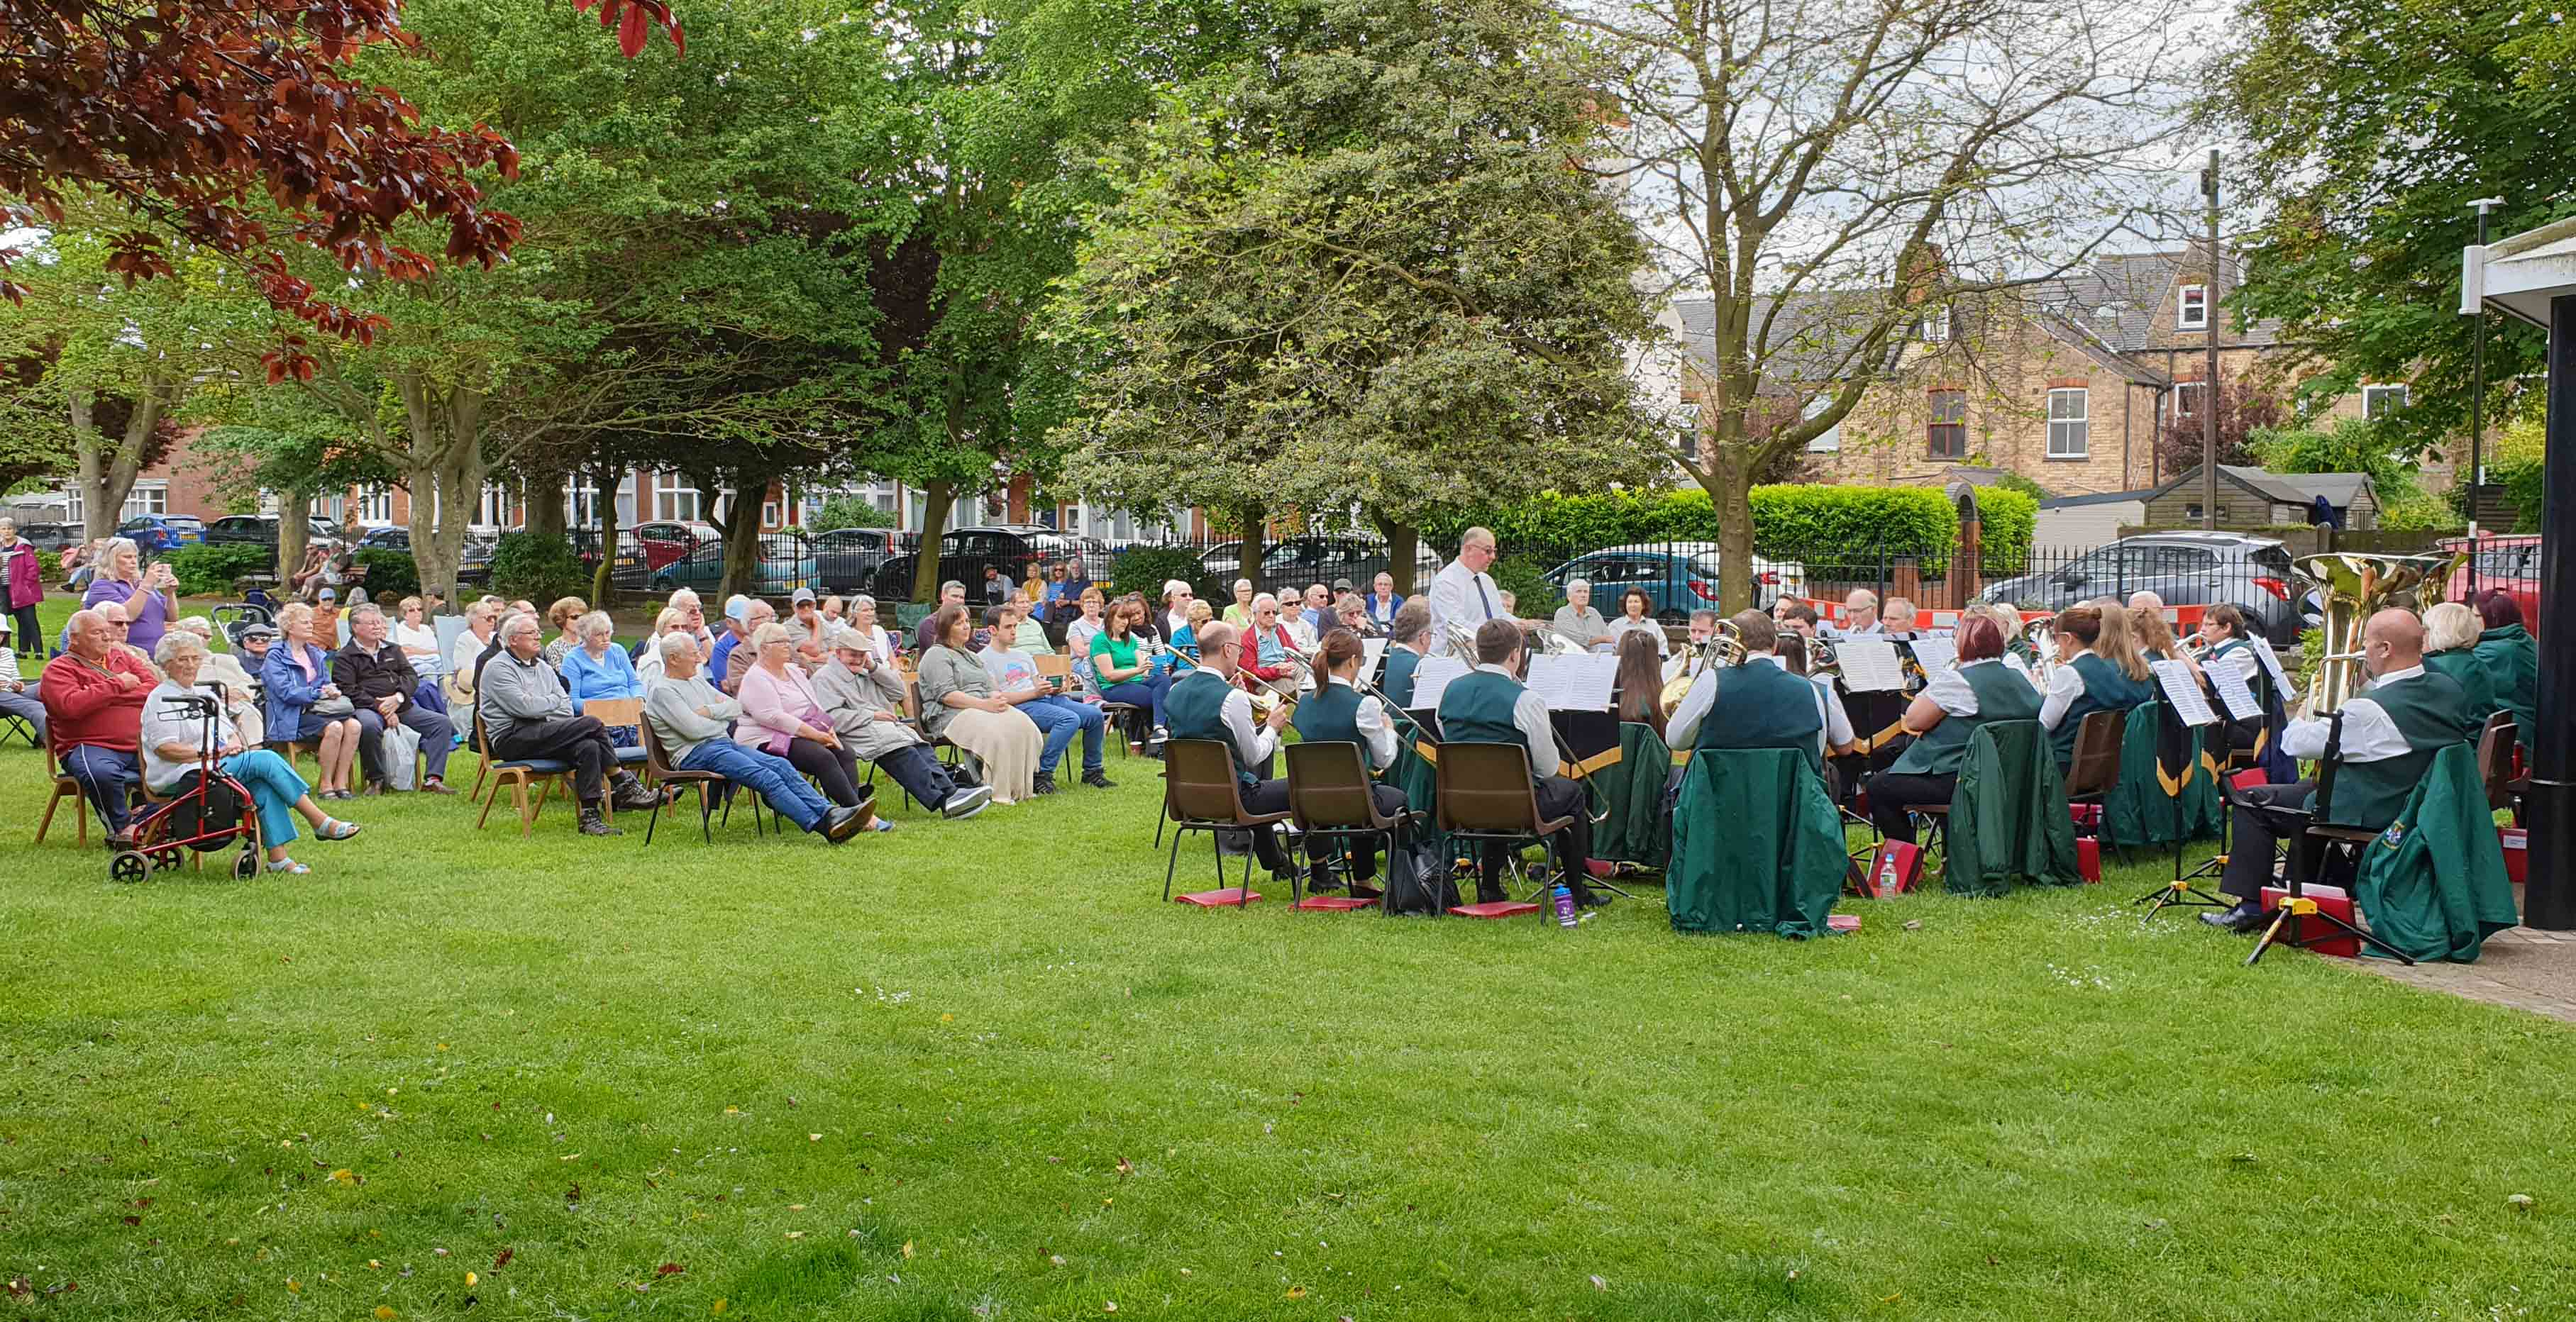 Hornsea- June 2019 Crowd enjoying an afternoon's music